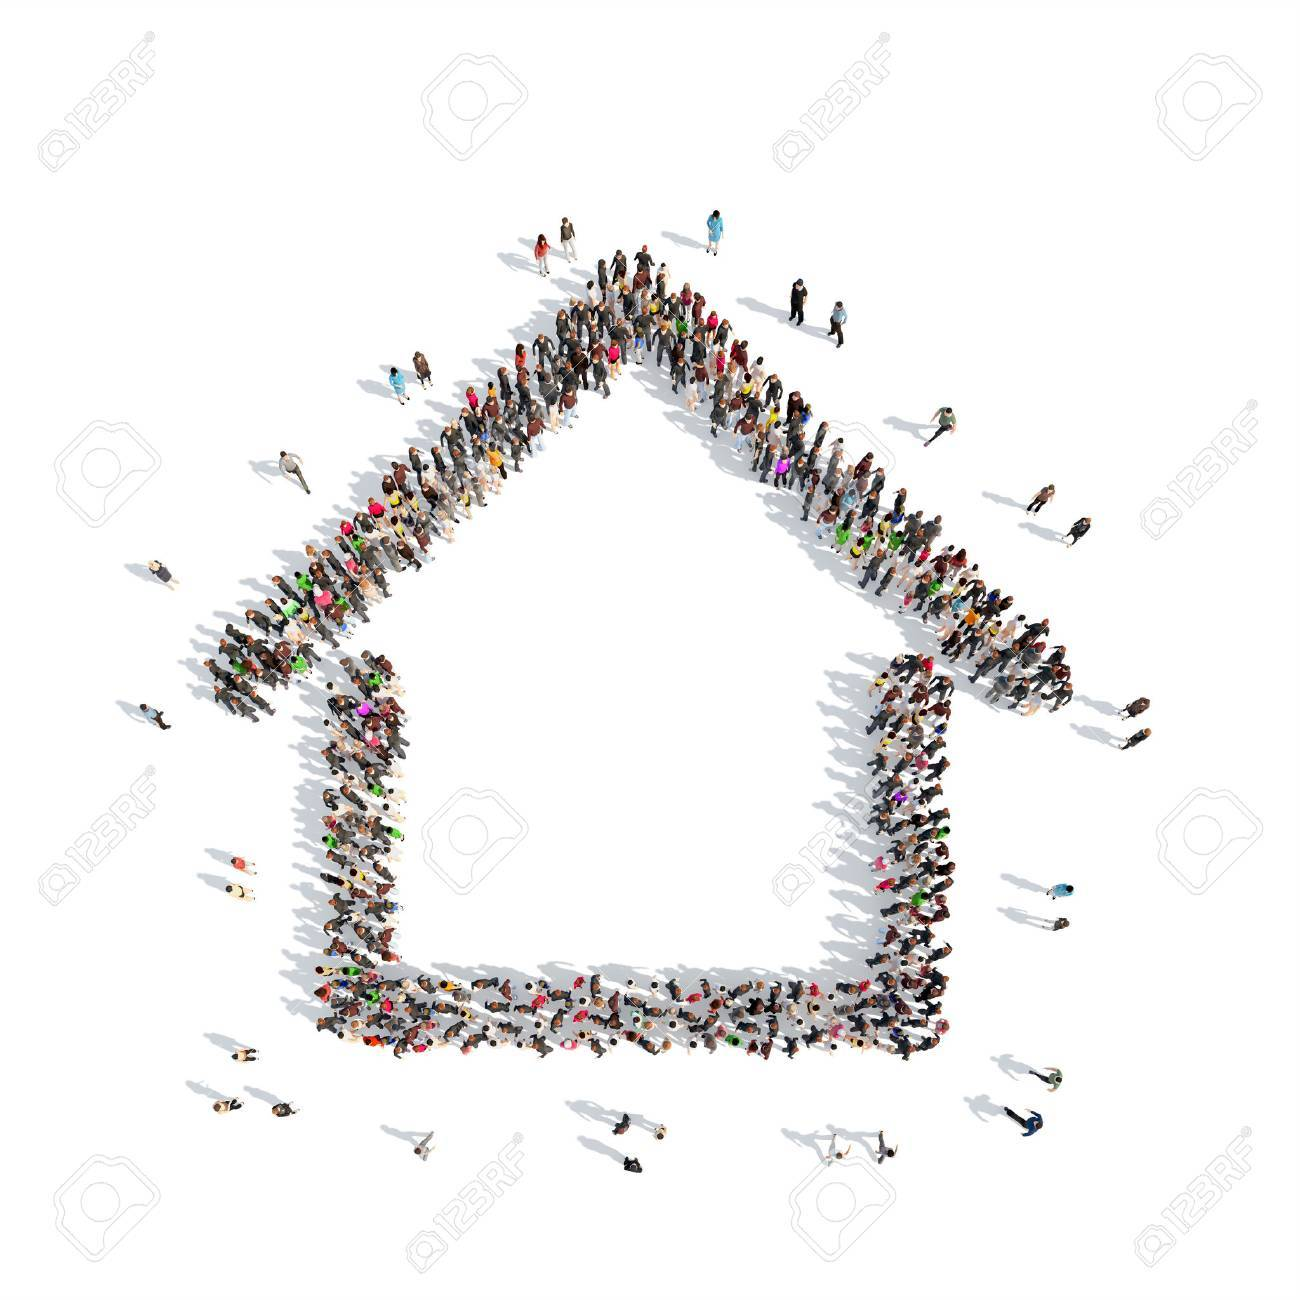 A large group of people in the shape of a house. Isolated, white background. - 40836712